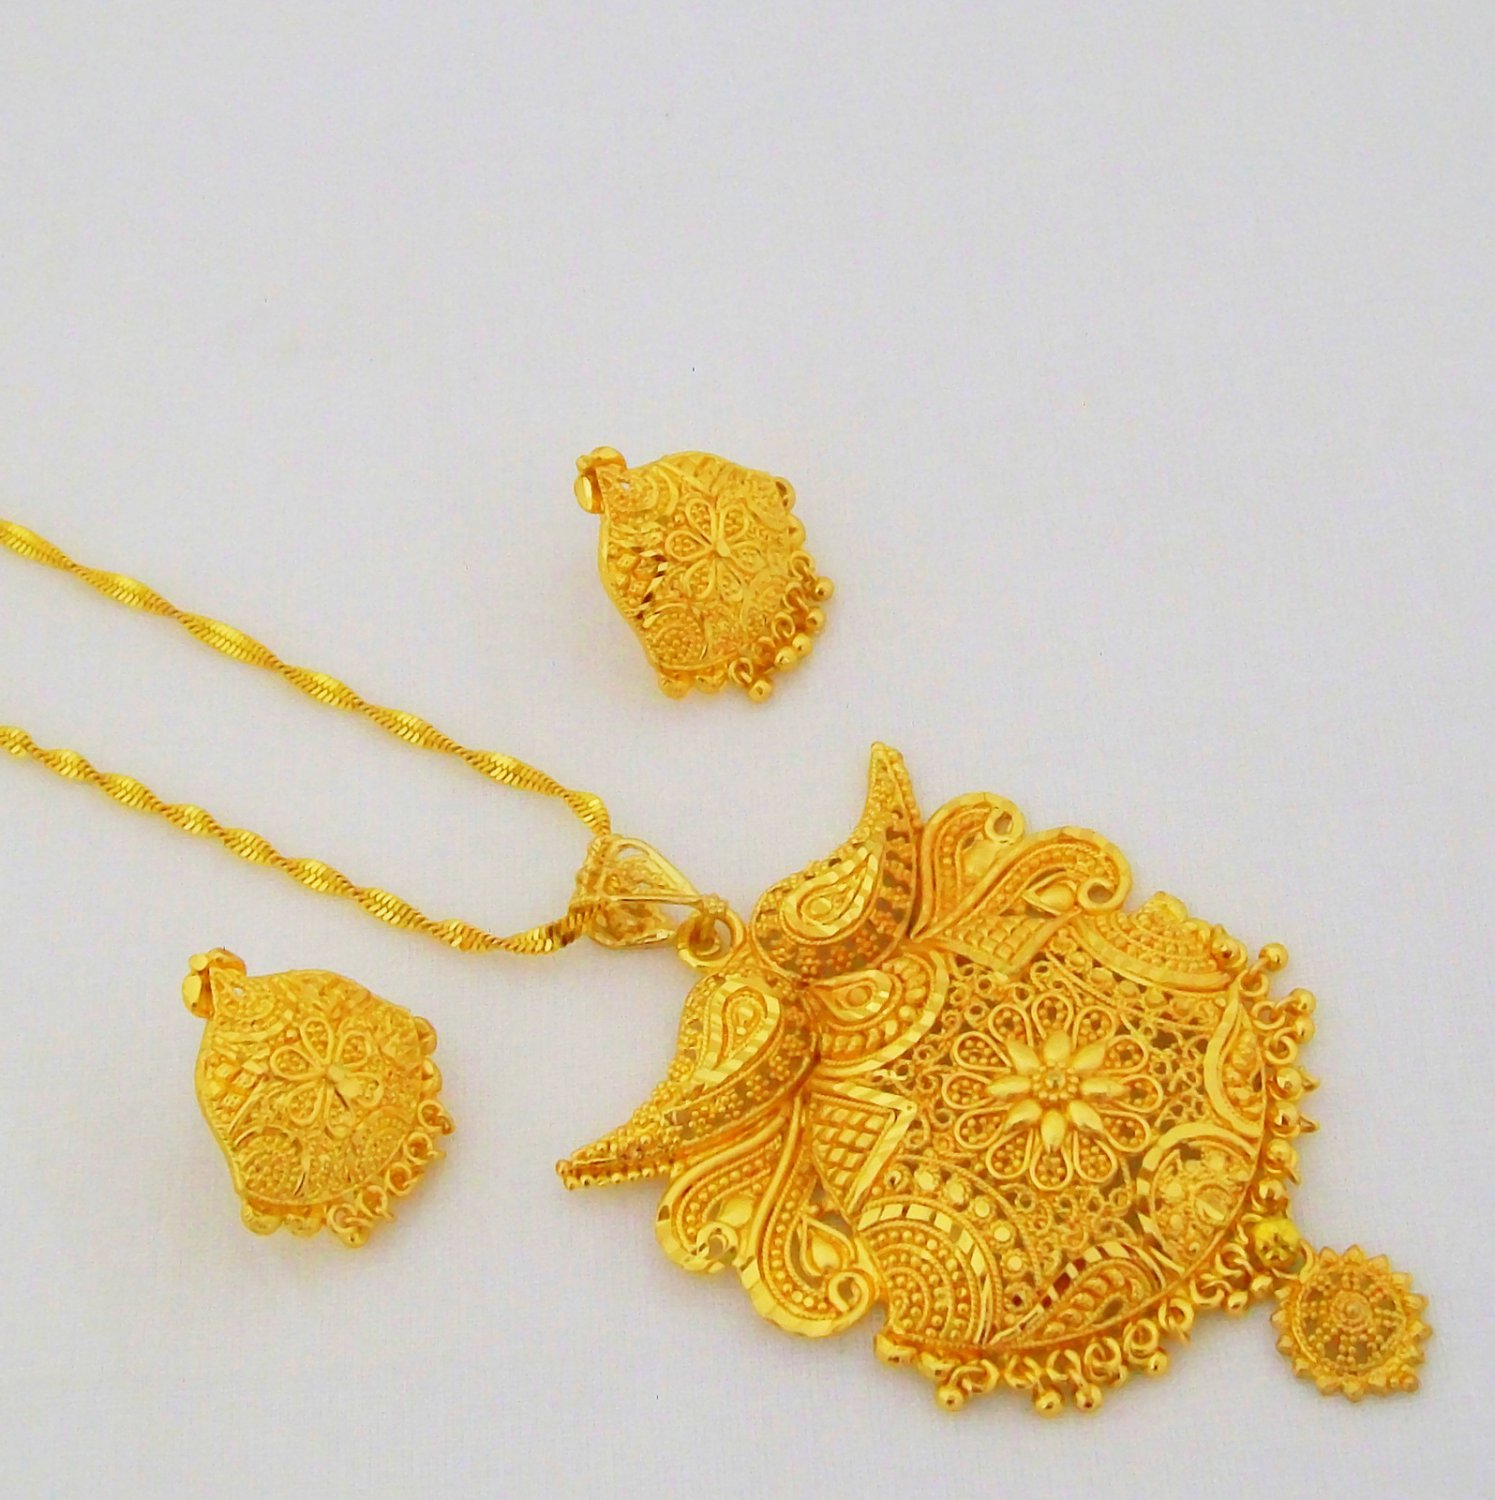 Gold Plated Filigree Chain Pendant Necklace Indian Fashion Costume Jewellery Set